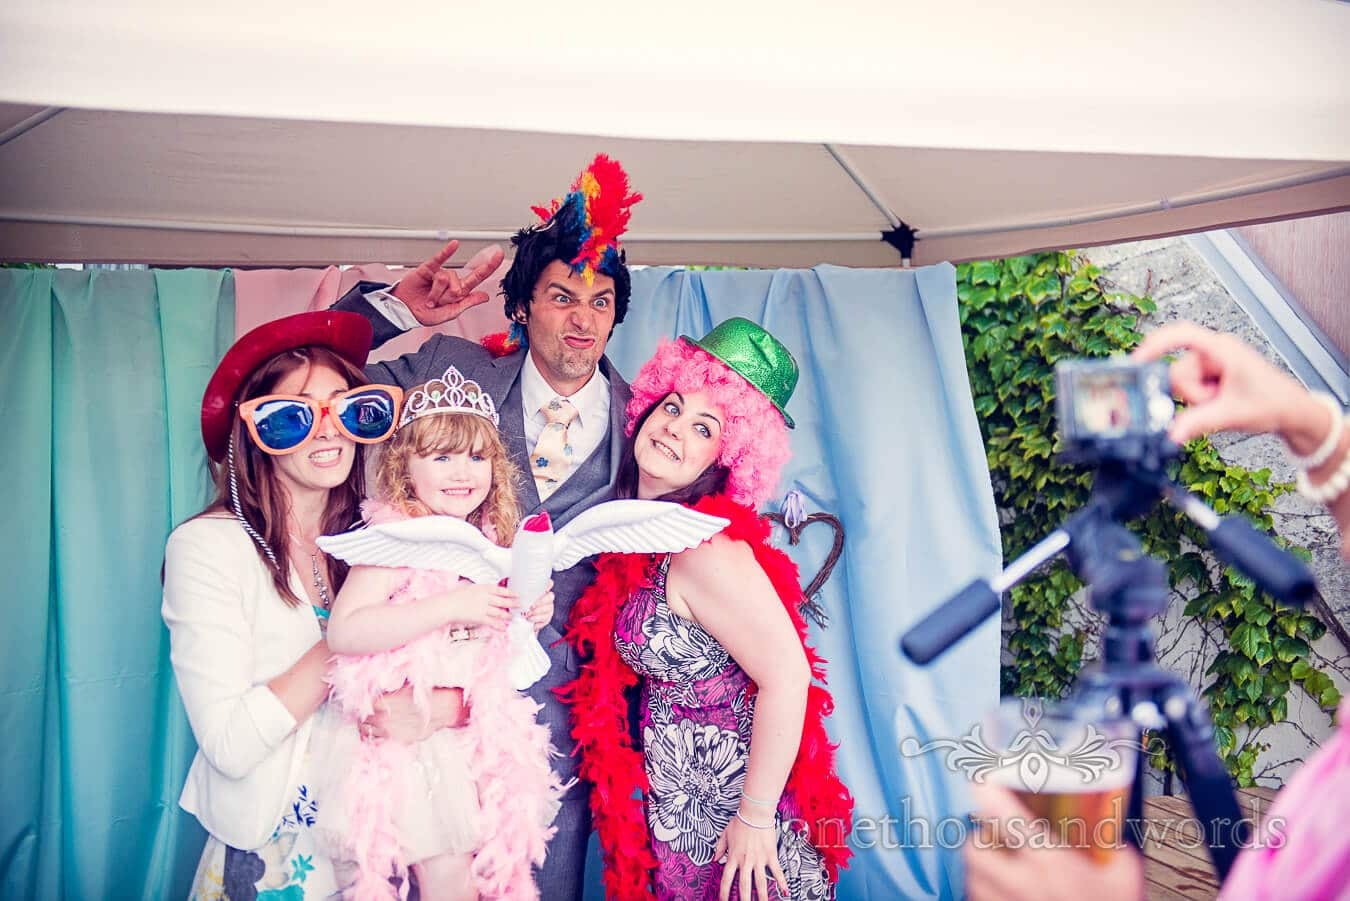 Fancy dress at Dorset Home Wedding Photo-booth